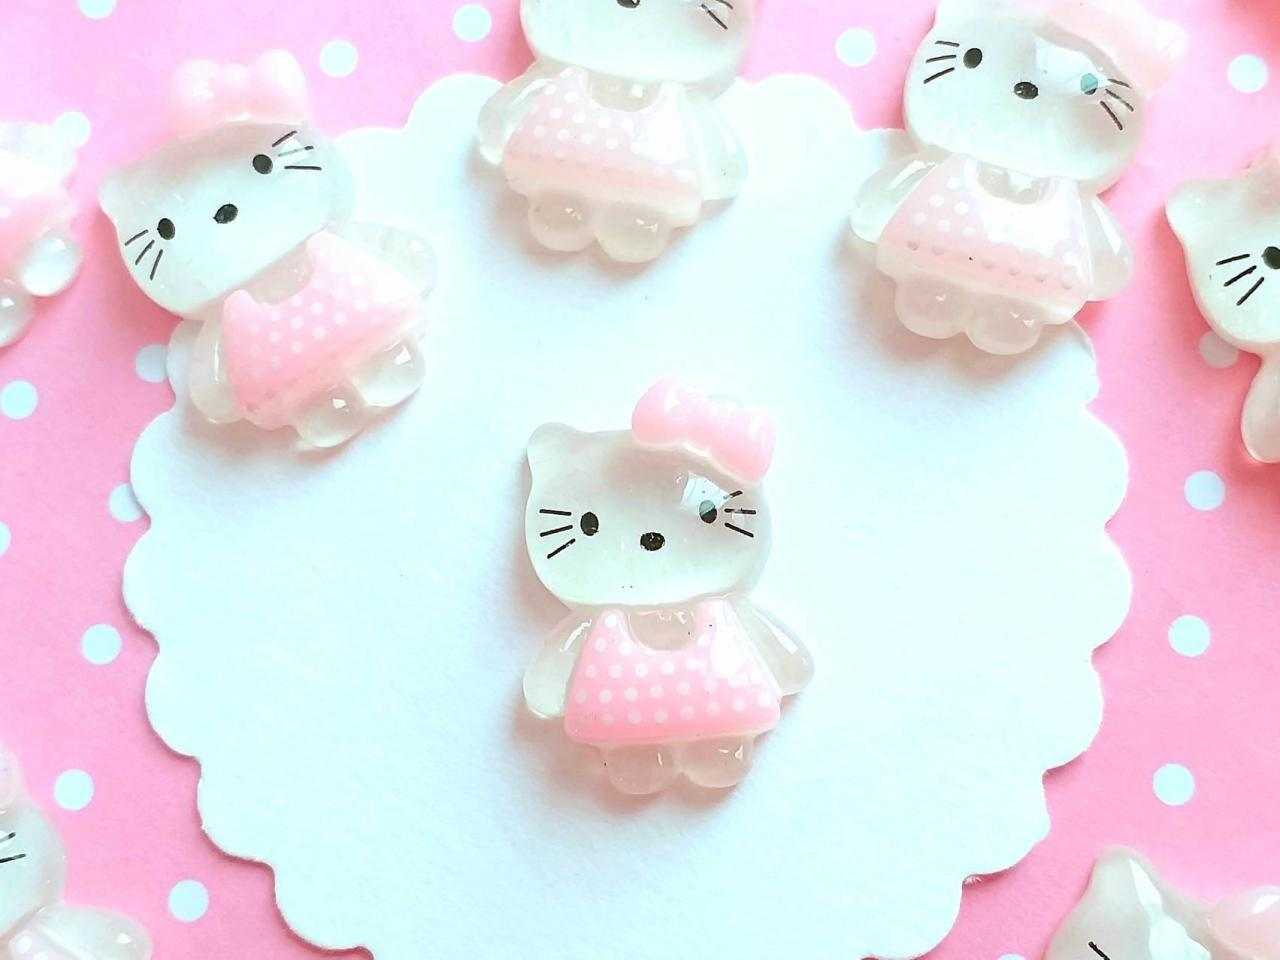 6 Hello Kitty Cabochons, Resin, Kawaii Cabochons, Flatback, Slime, Decoden, Embellishment, Craft Supplies, Scrapbooking